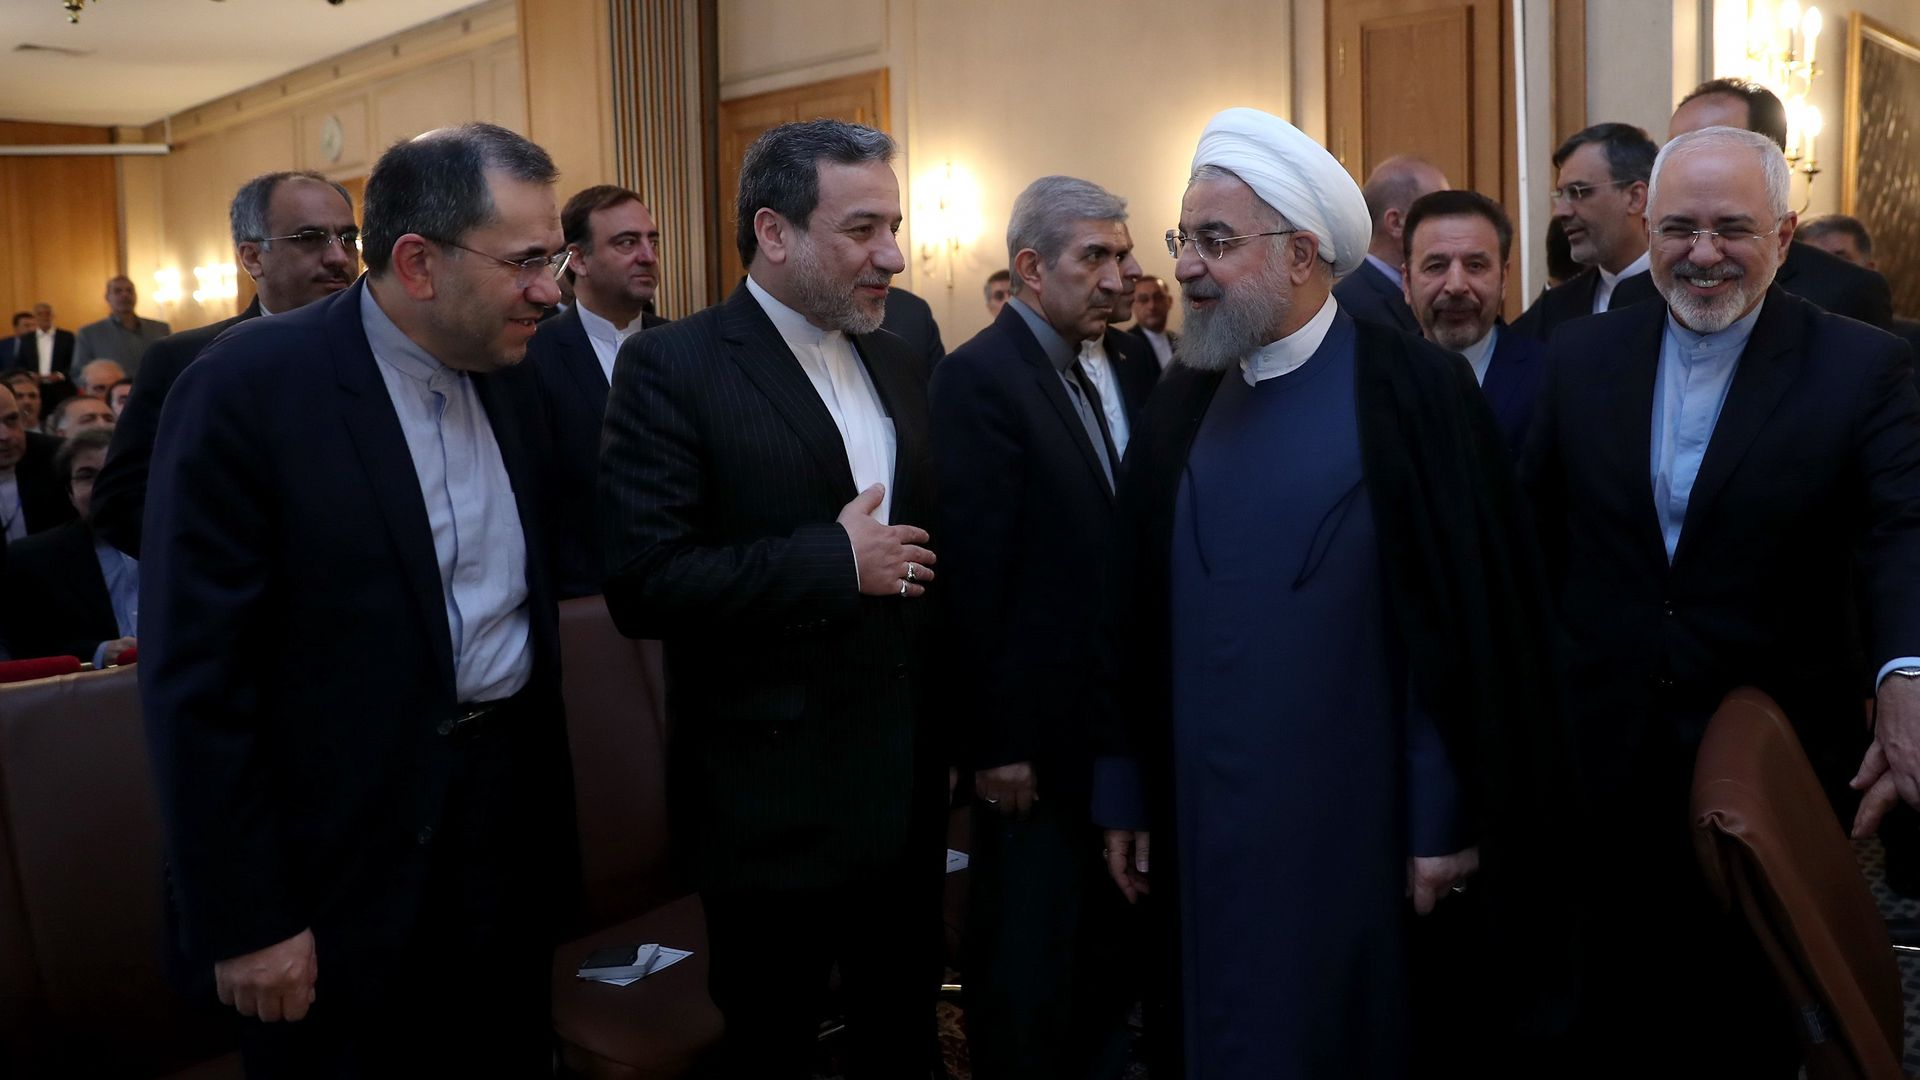 Iranian President Hassan Rouhani and Iranian Foreign Minister Javad Zarif meeting with foreign embassies and diplomatic mission representatives in Tehran.